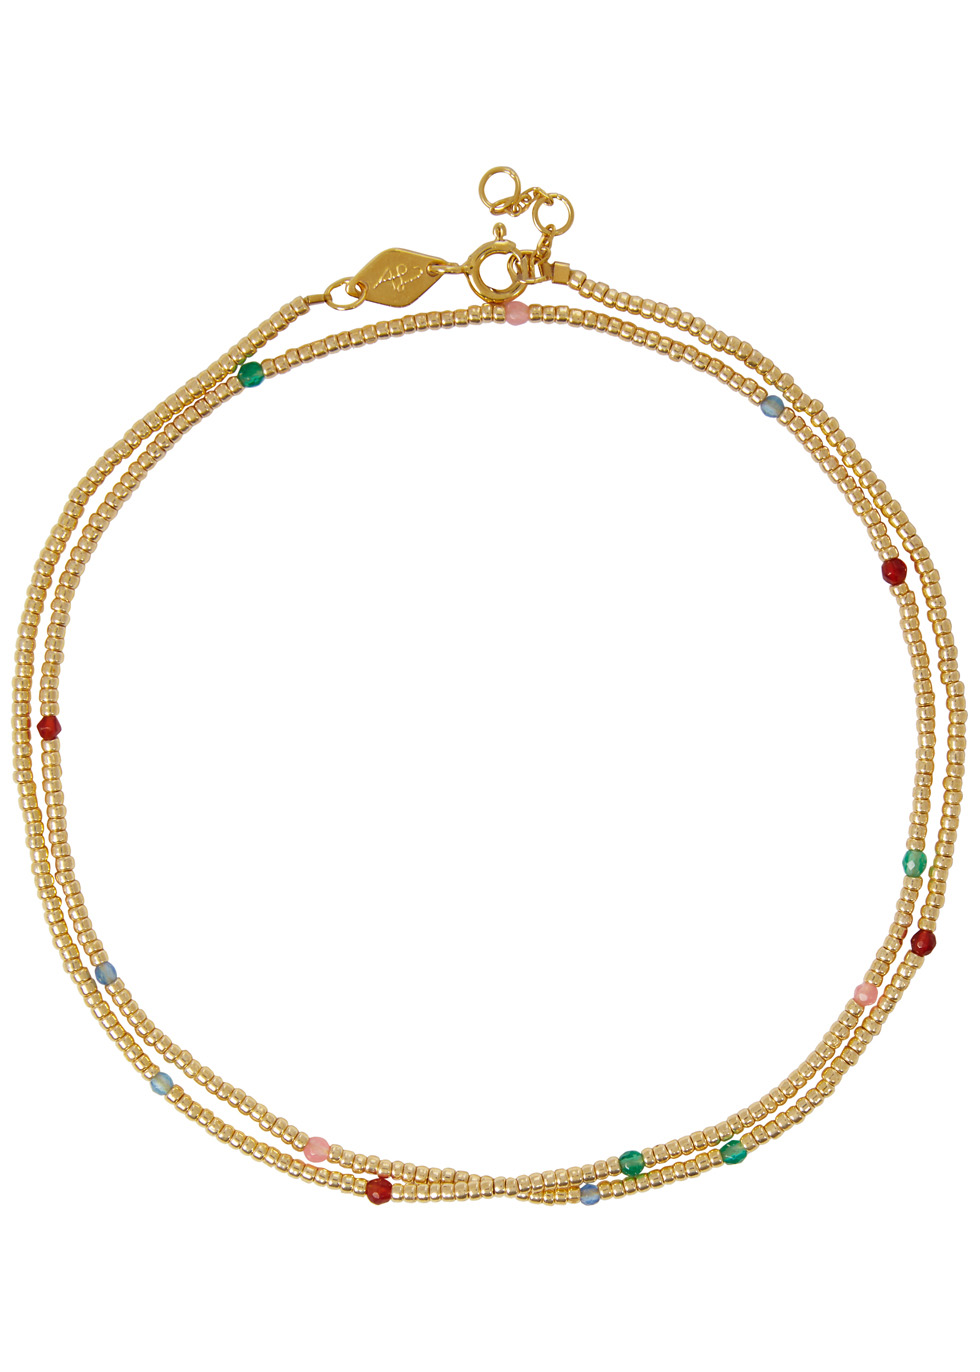 ANNI LU JUVEL 18CT GOLD-PLATED BEADED NECKLACE